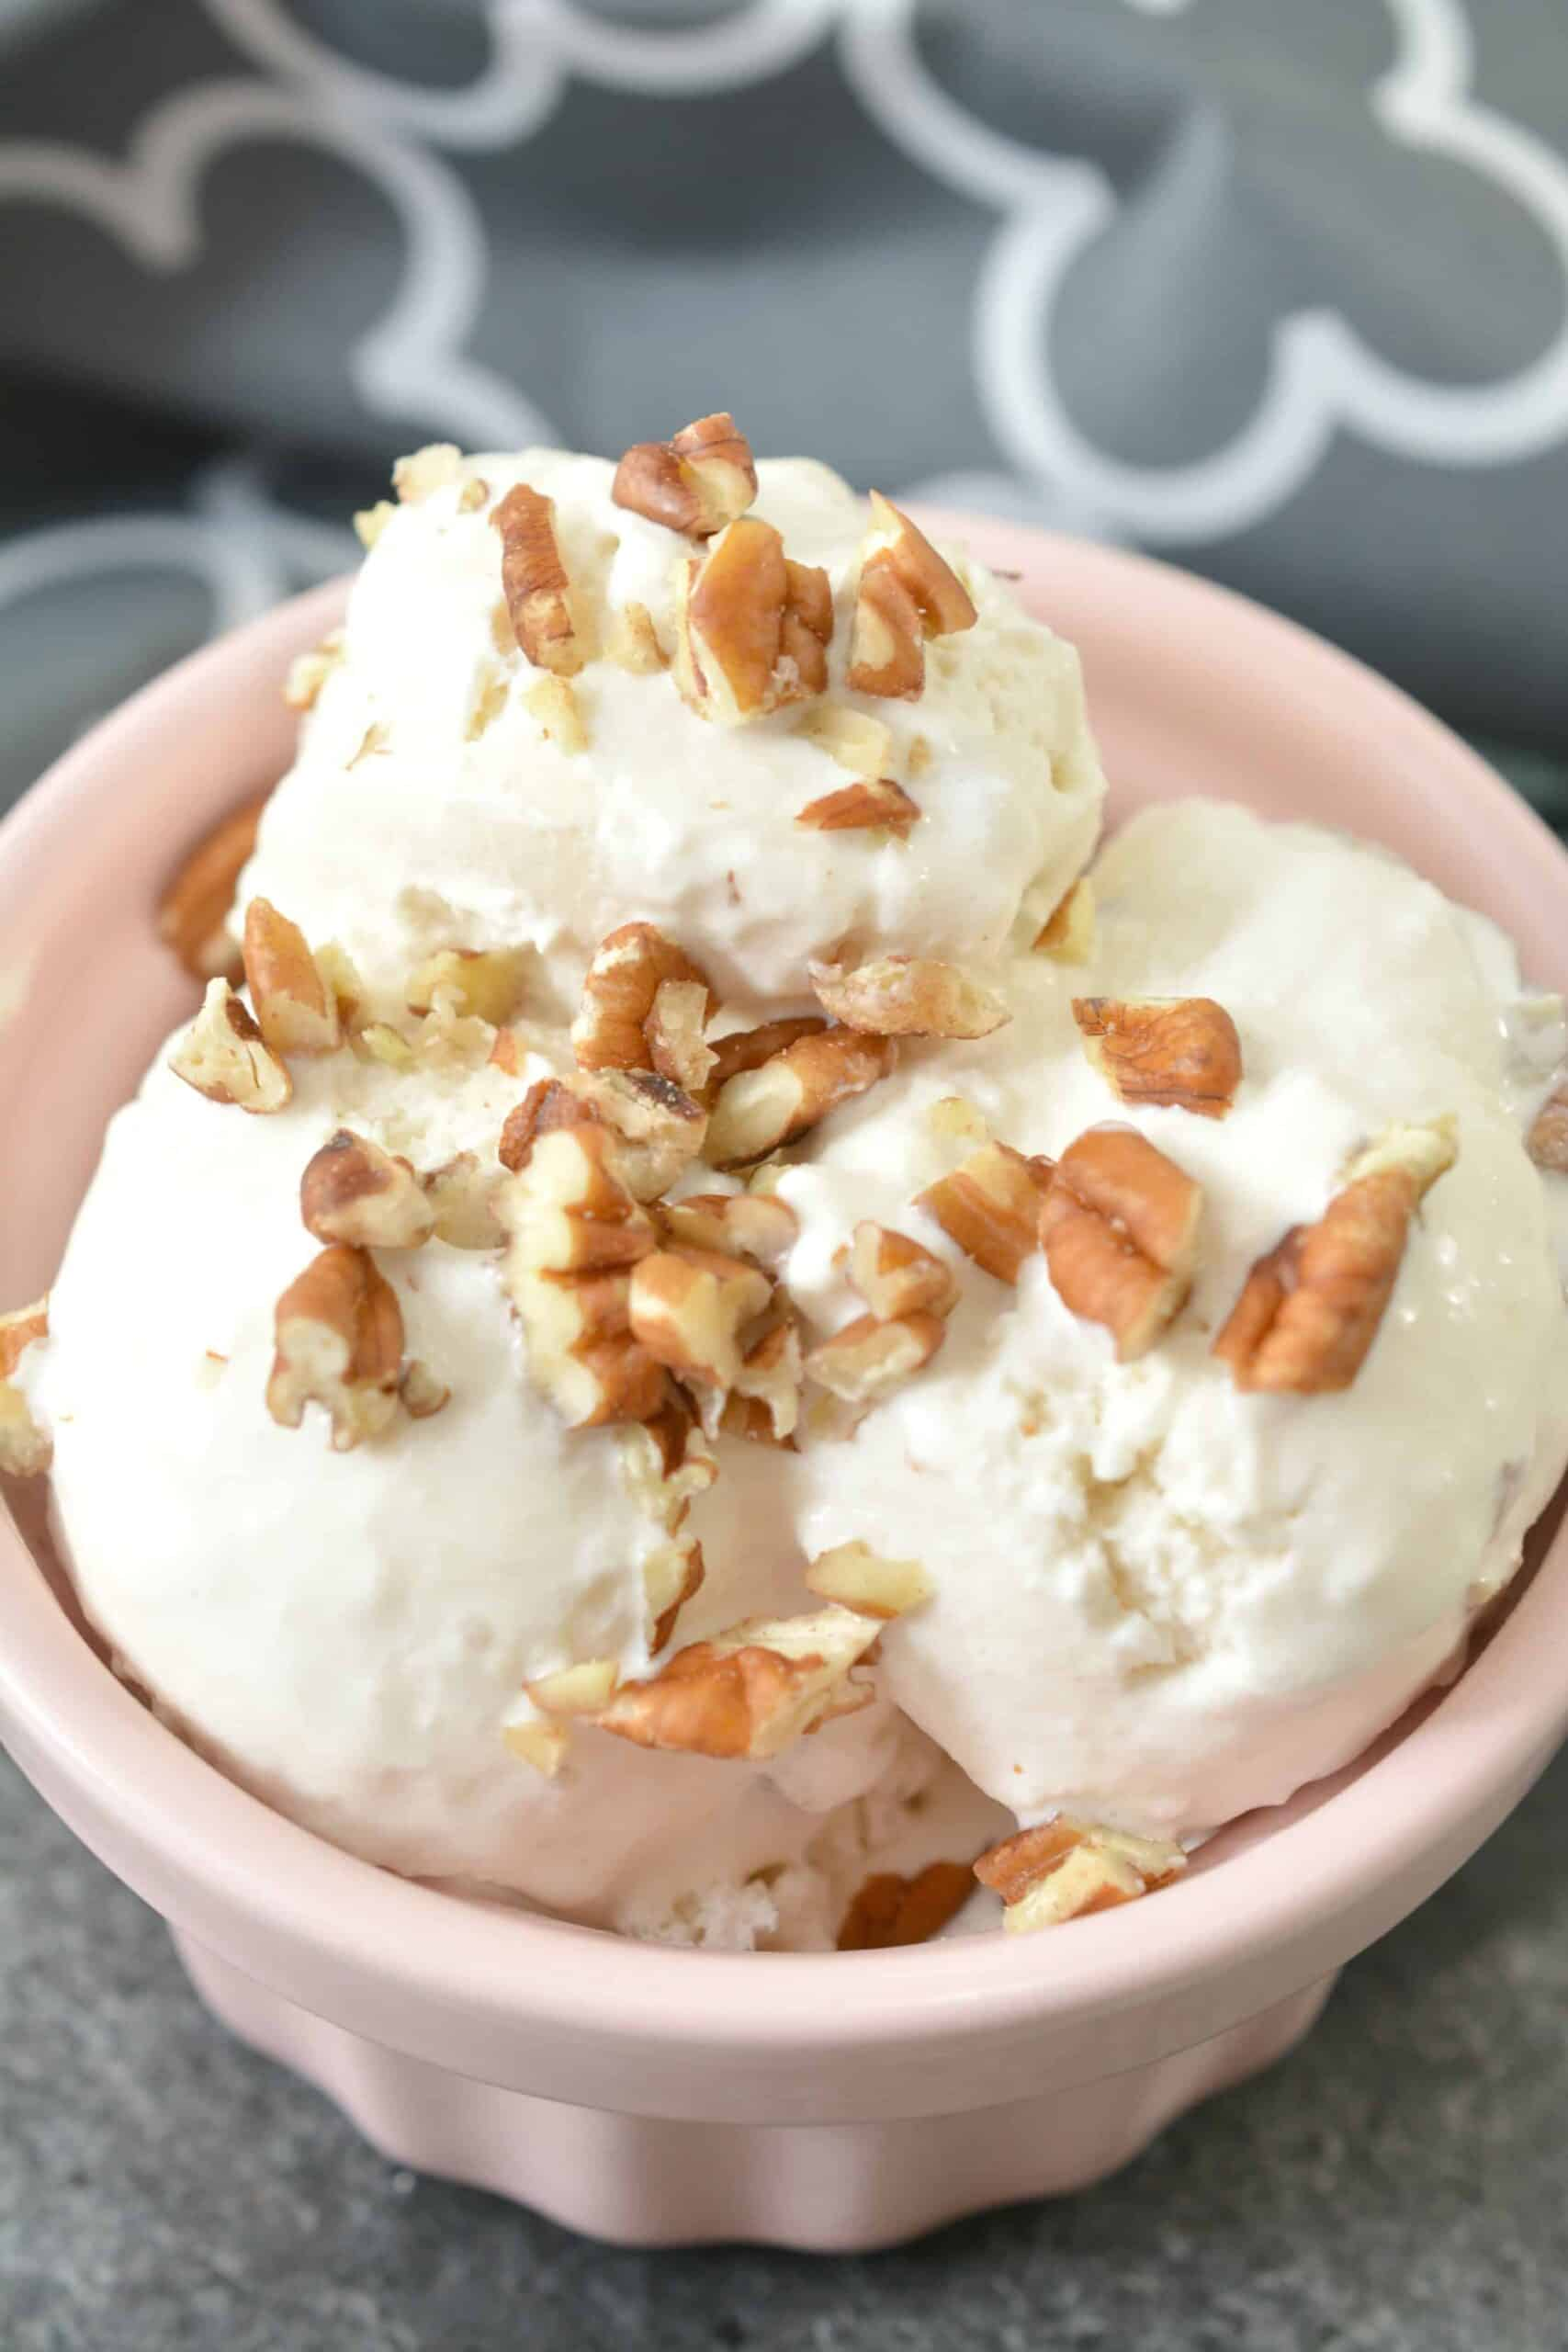 Keto Maple Pecan Ice Cream